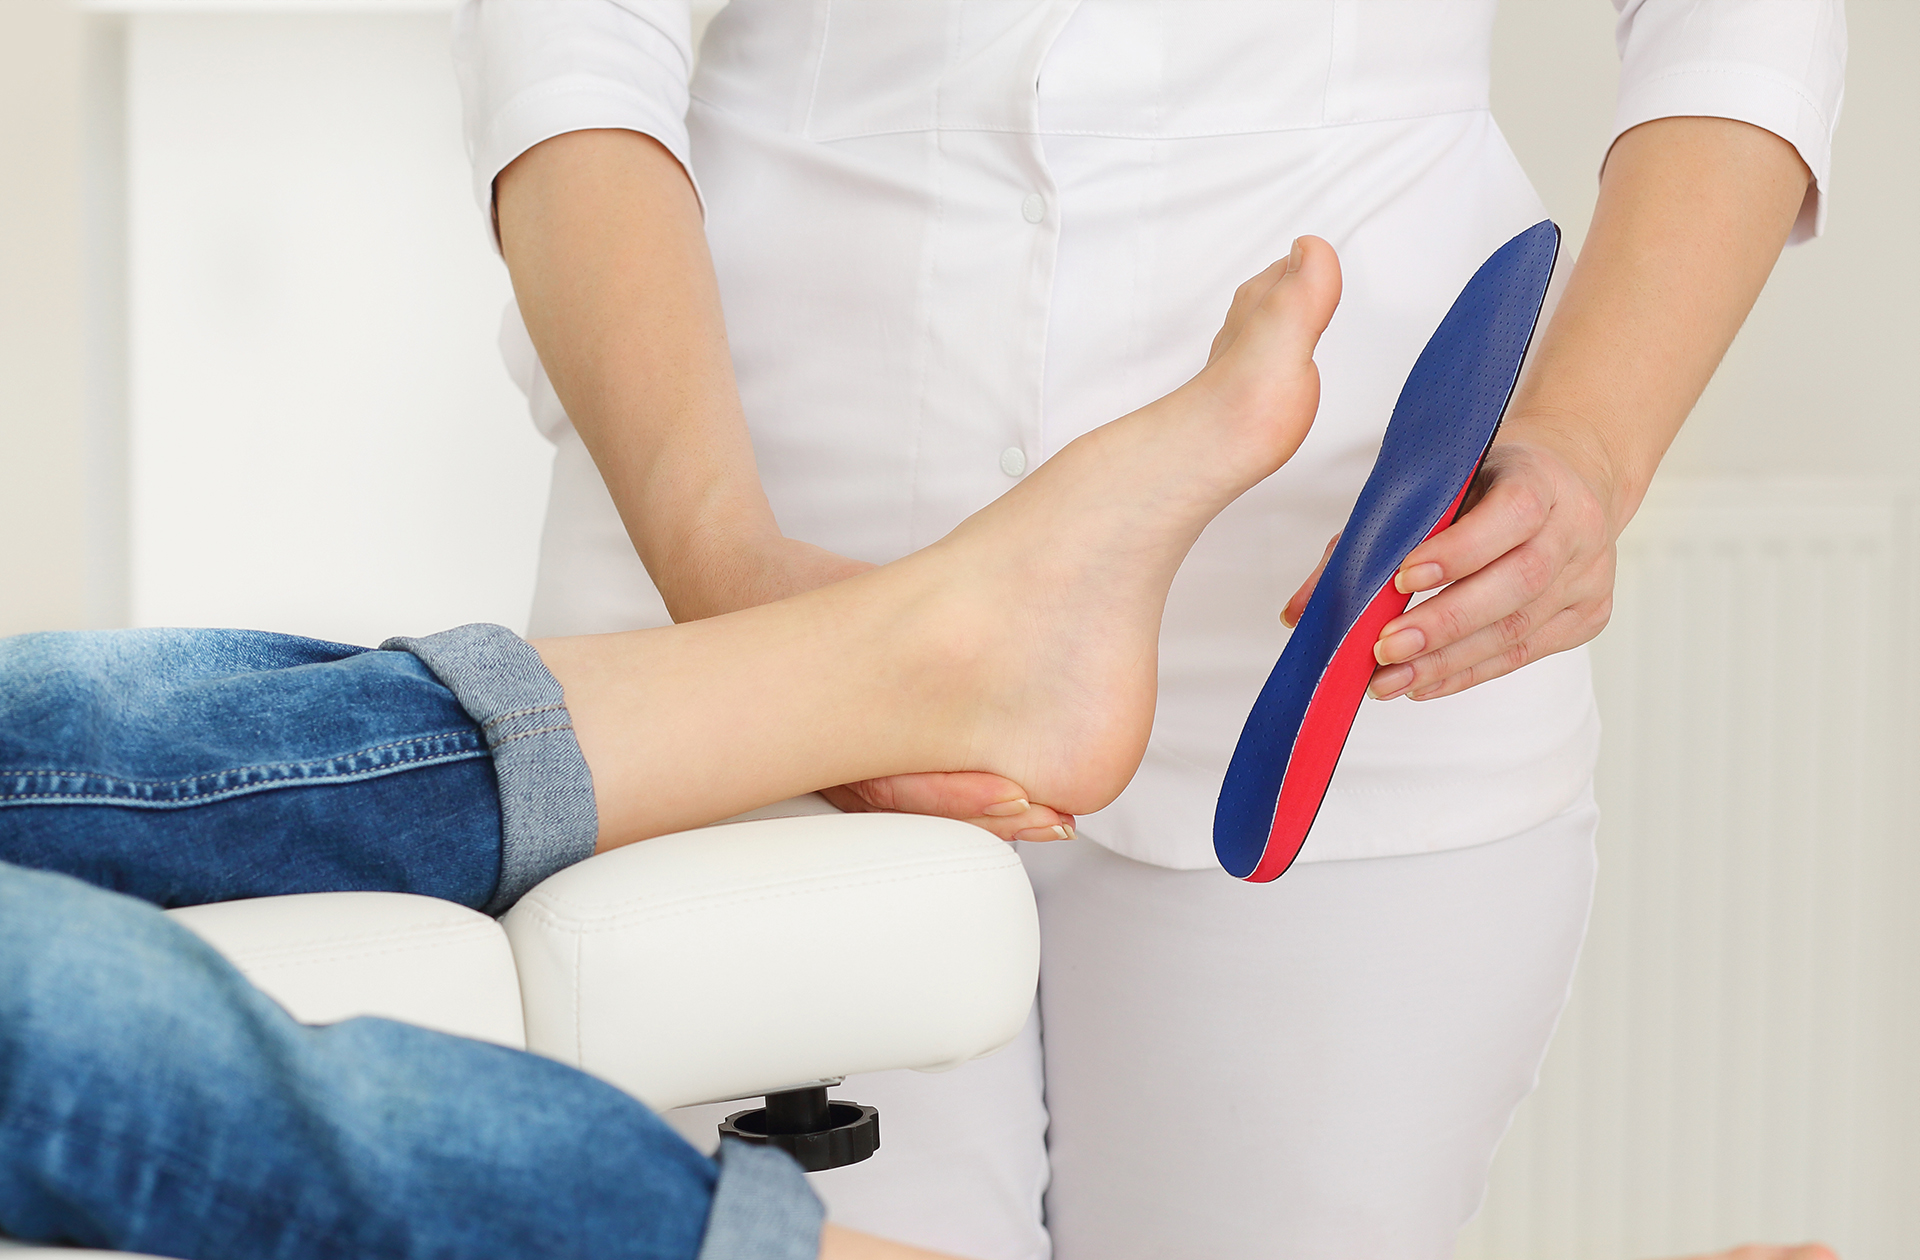 Modular orthotic Insole held against foot